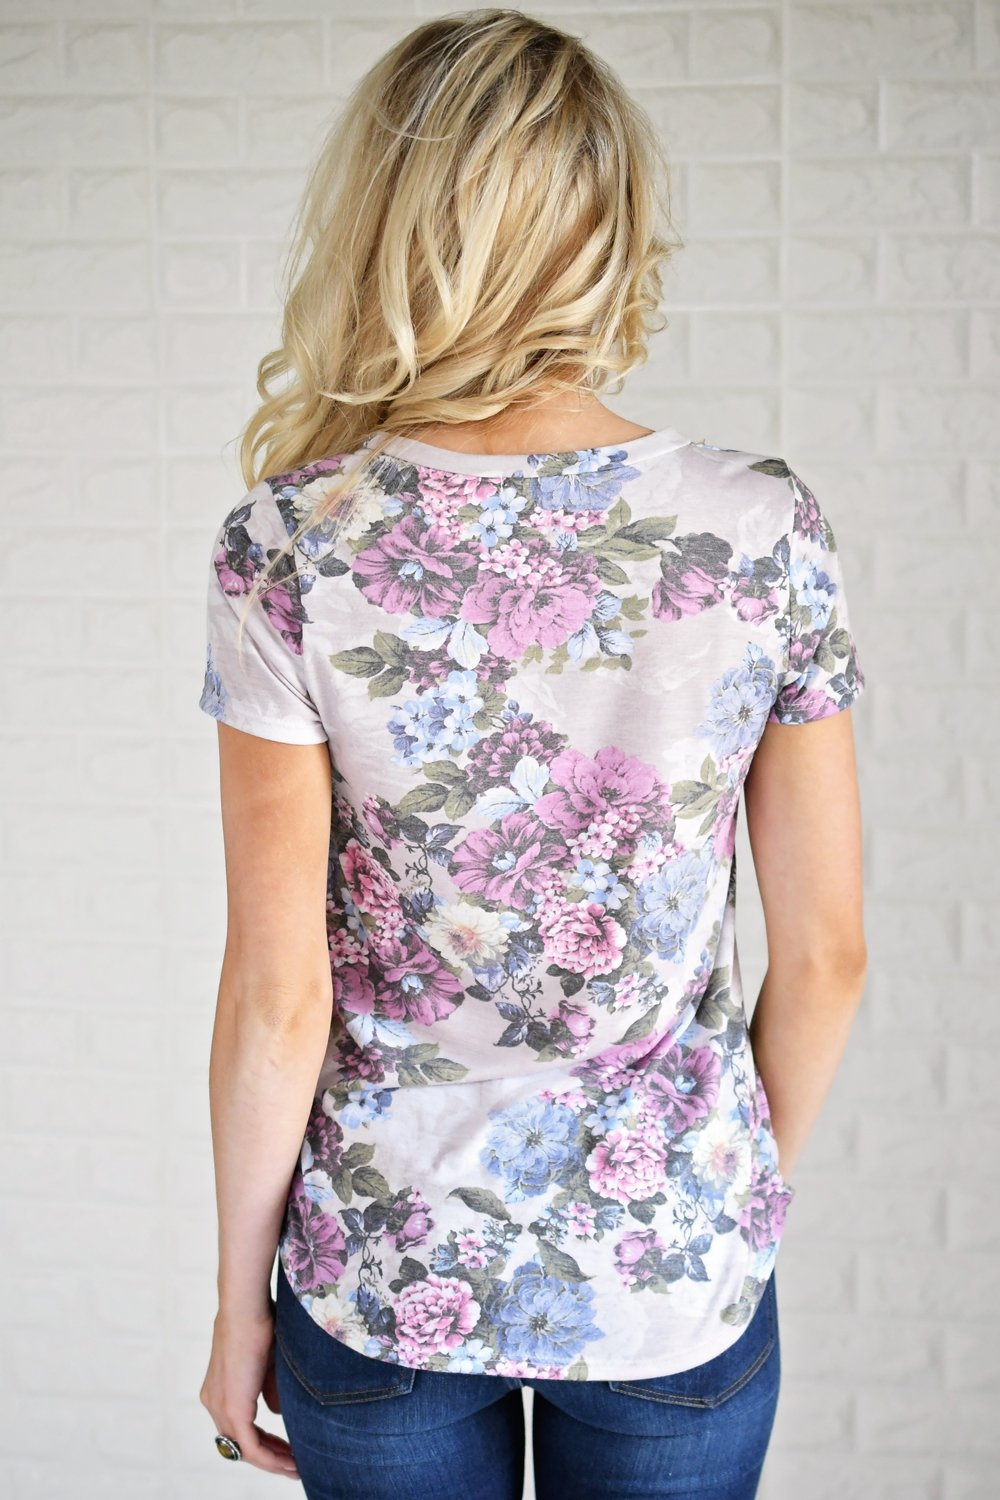 Stuck in the Moment Violet Floral Top